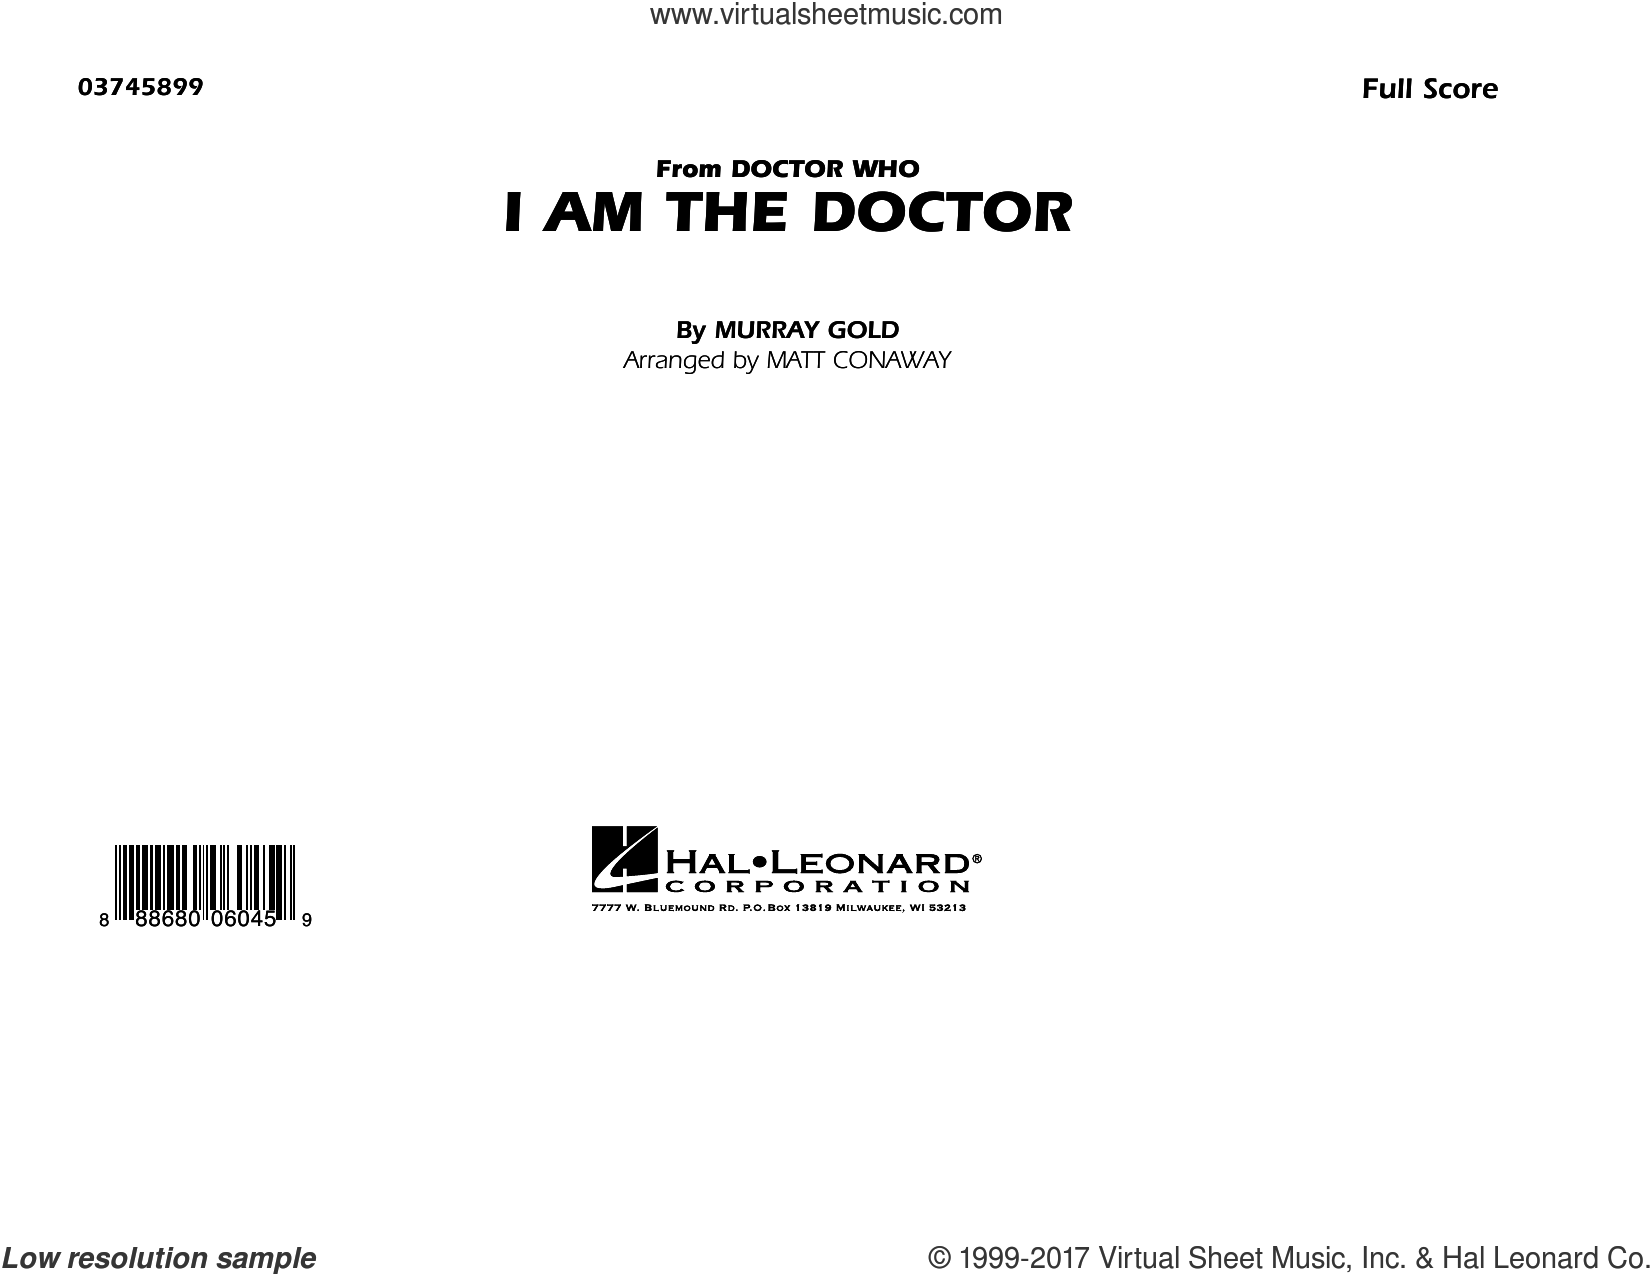 I Am the Doctor (from Doctor Who) (COMPLETE) sheet music for marching band by Matt Conaway and Murray Gold, intermediate skill level